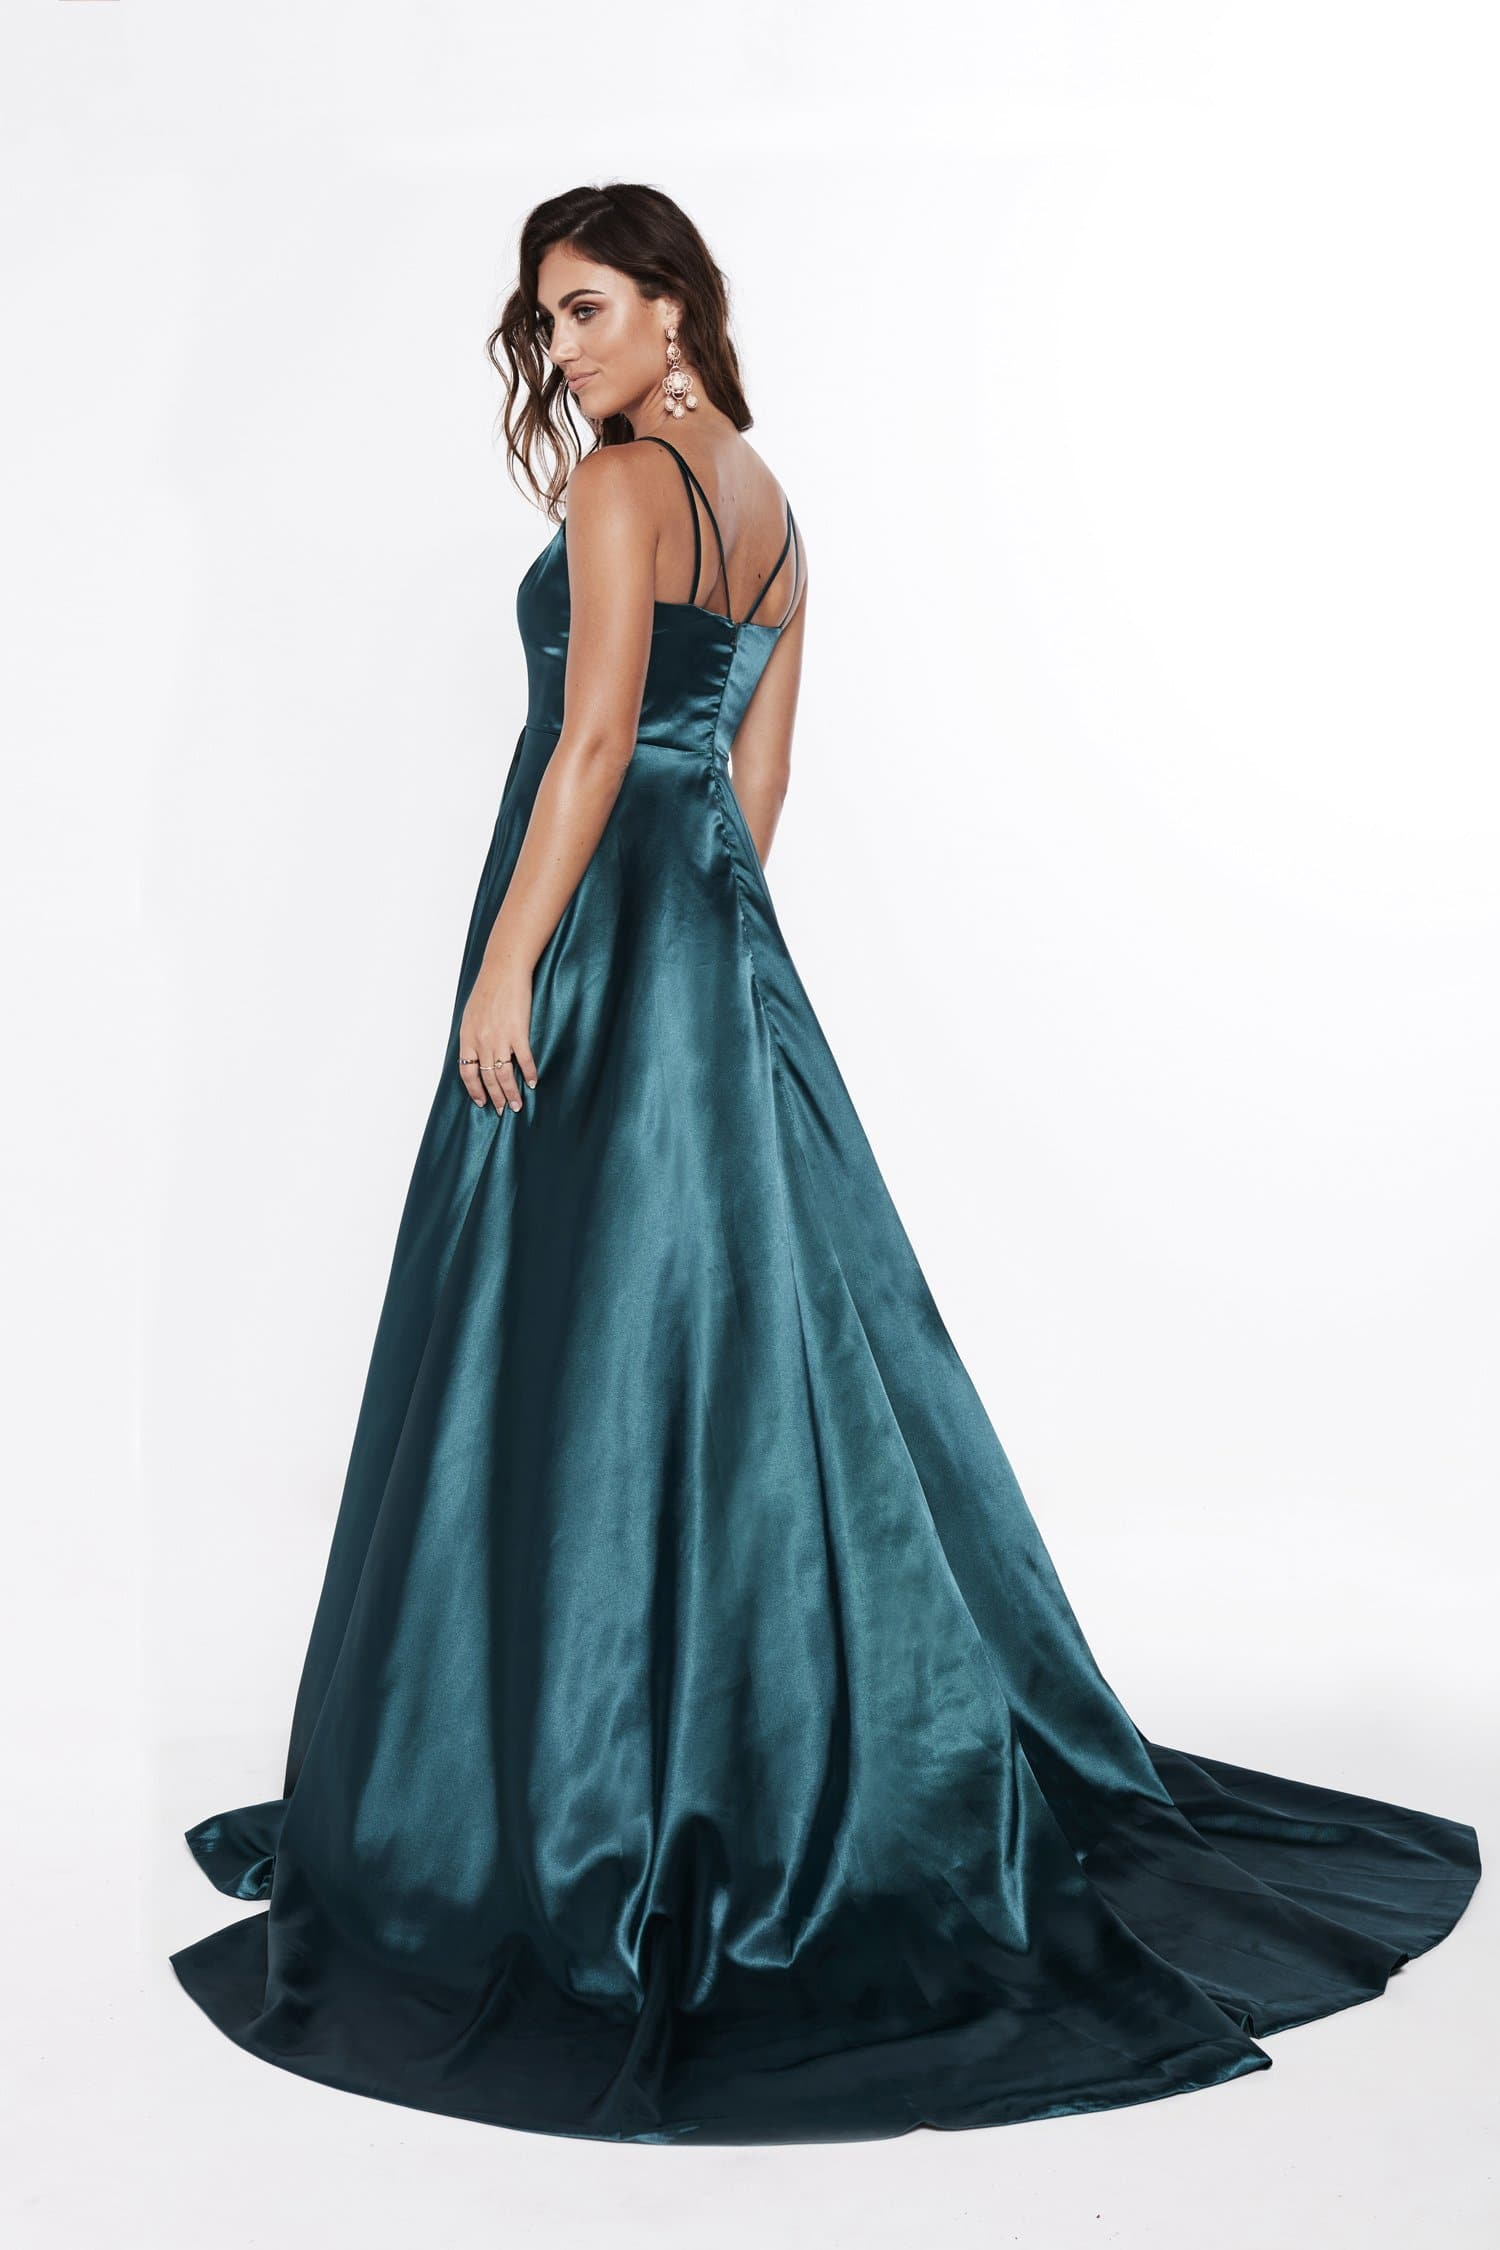 A&N Luxe Lucia Satin Gown - Teal